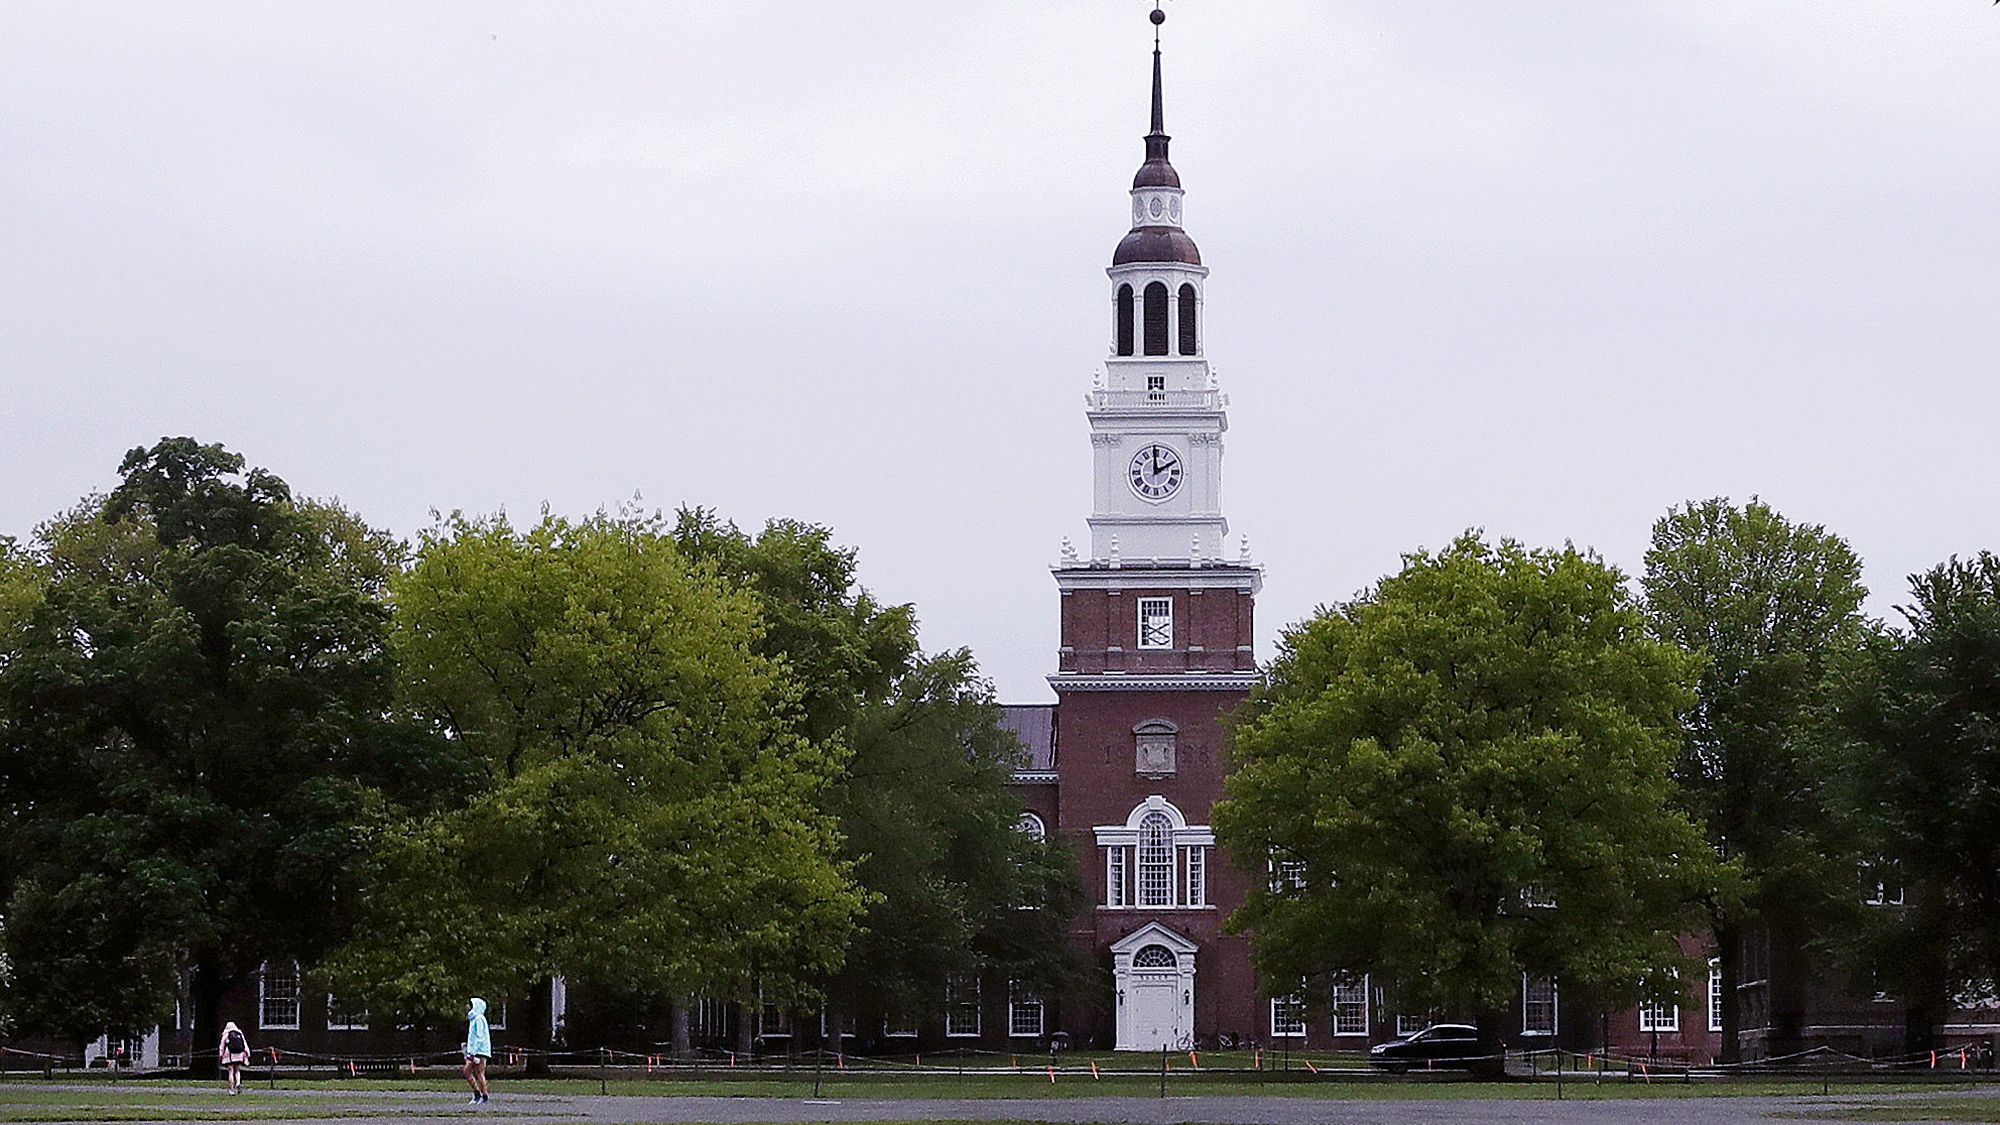 Allegations Of Abuse Of Students With >> Dartmouth Students Shocked Angered Over Abuse Allegations In